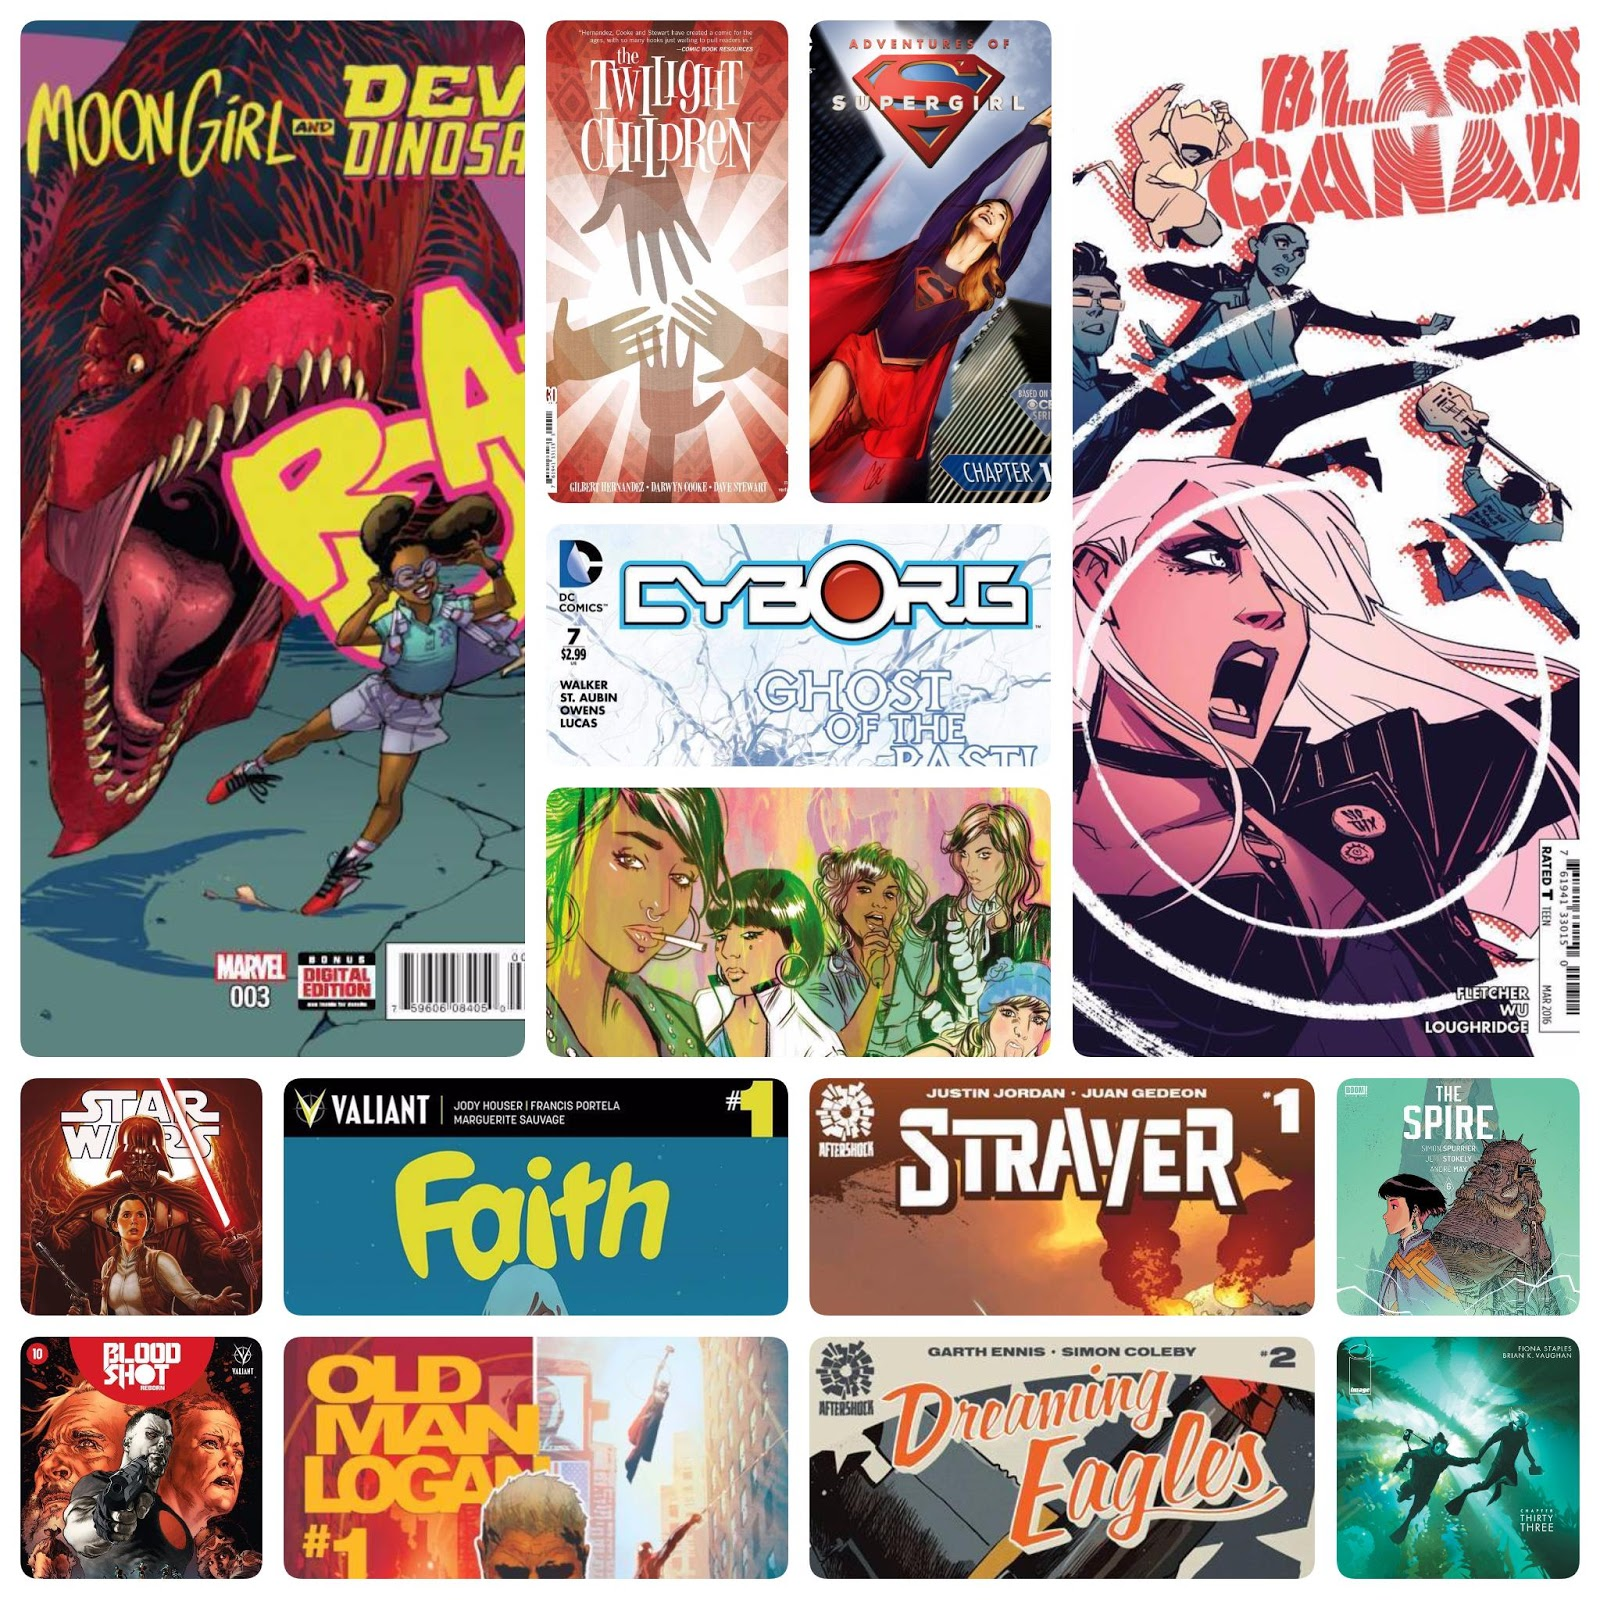 NEW COMIC BOOK DAY Notable Releases 1 27 16